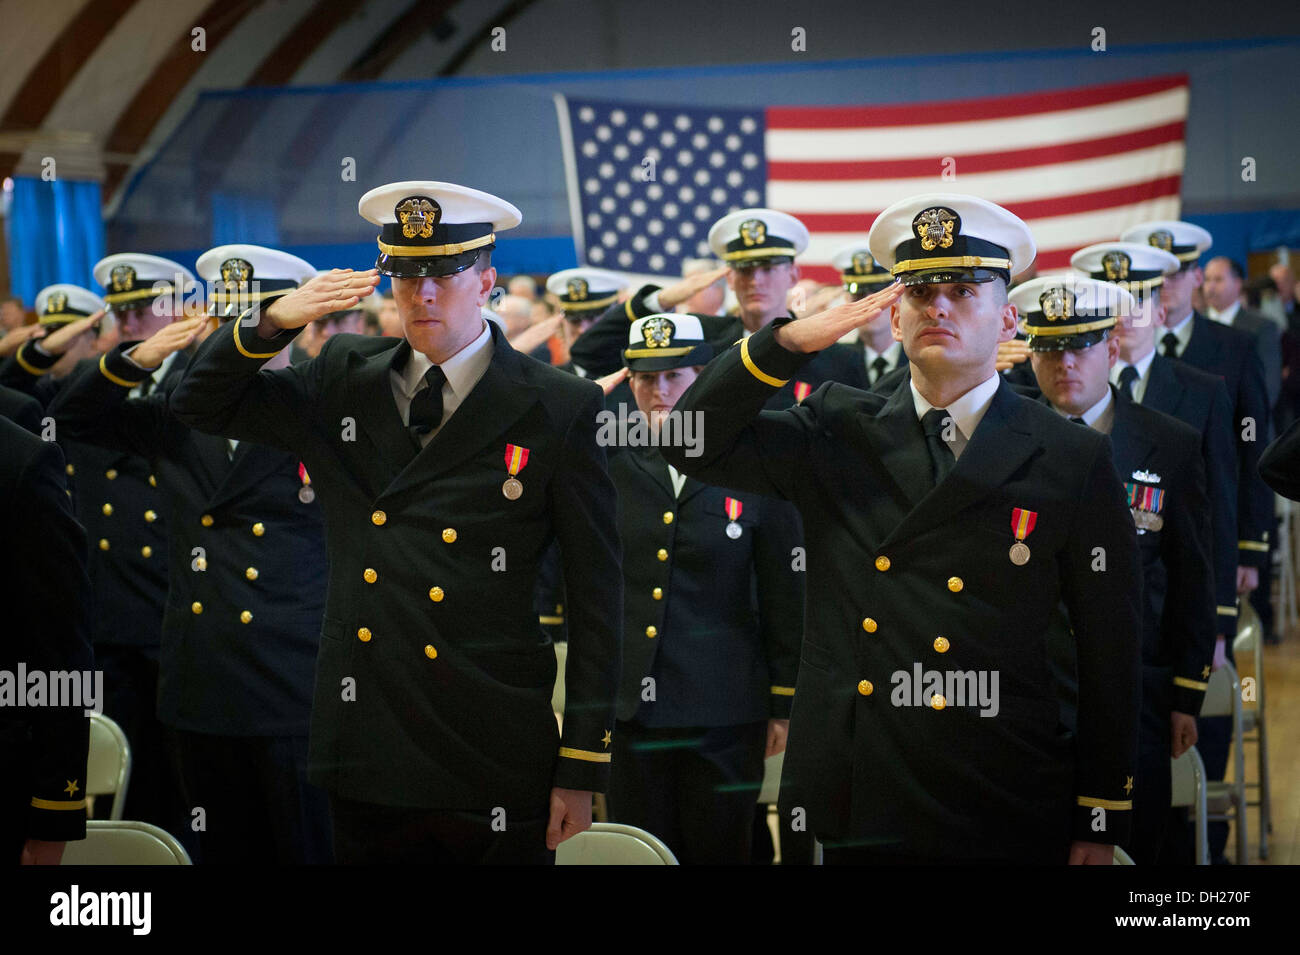 Officer candidates salute during the playing of the national anthem at an Officer Candidate School (OCS) graduation ceremony at - Stock Image